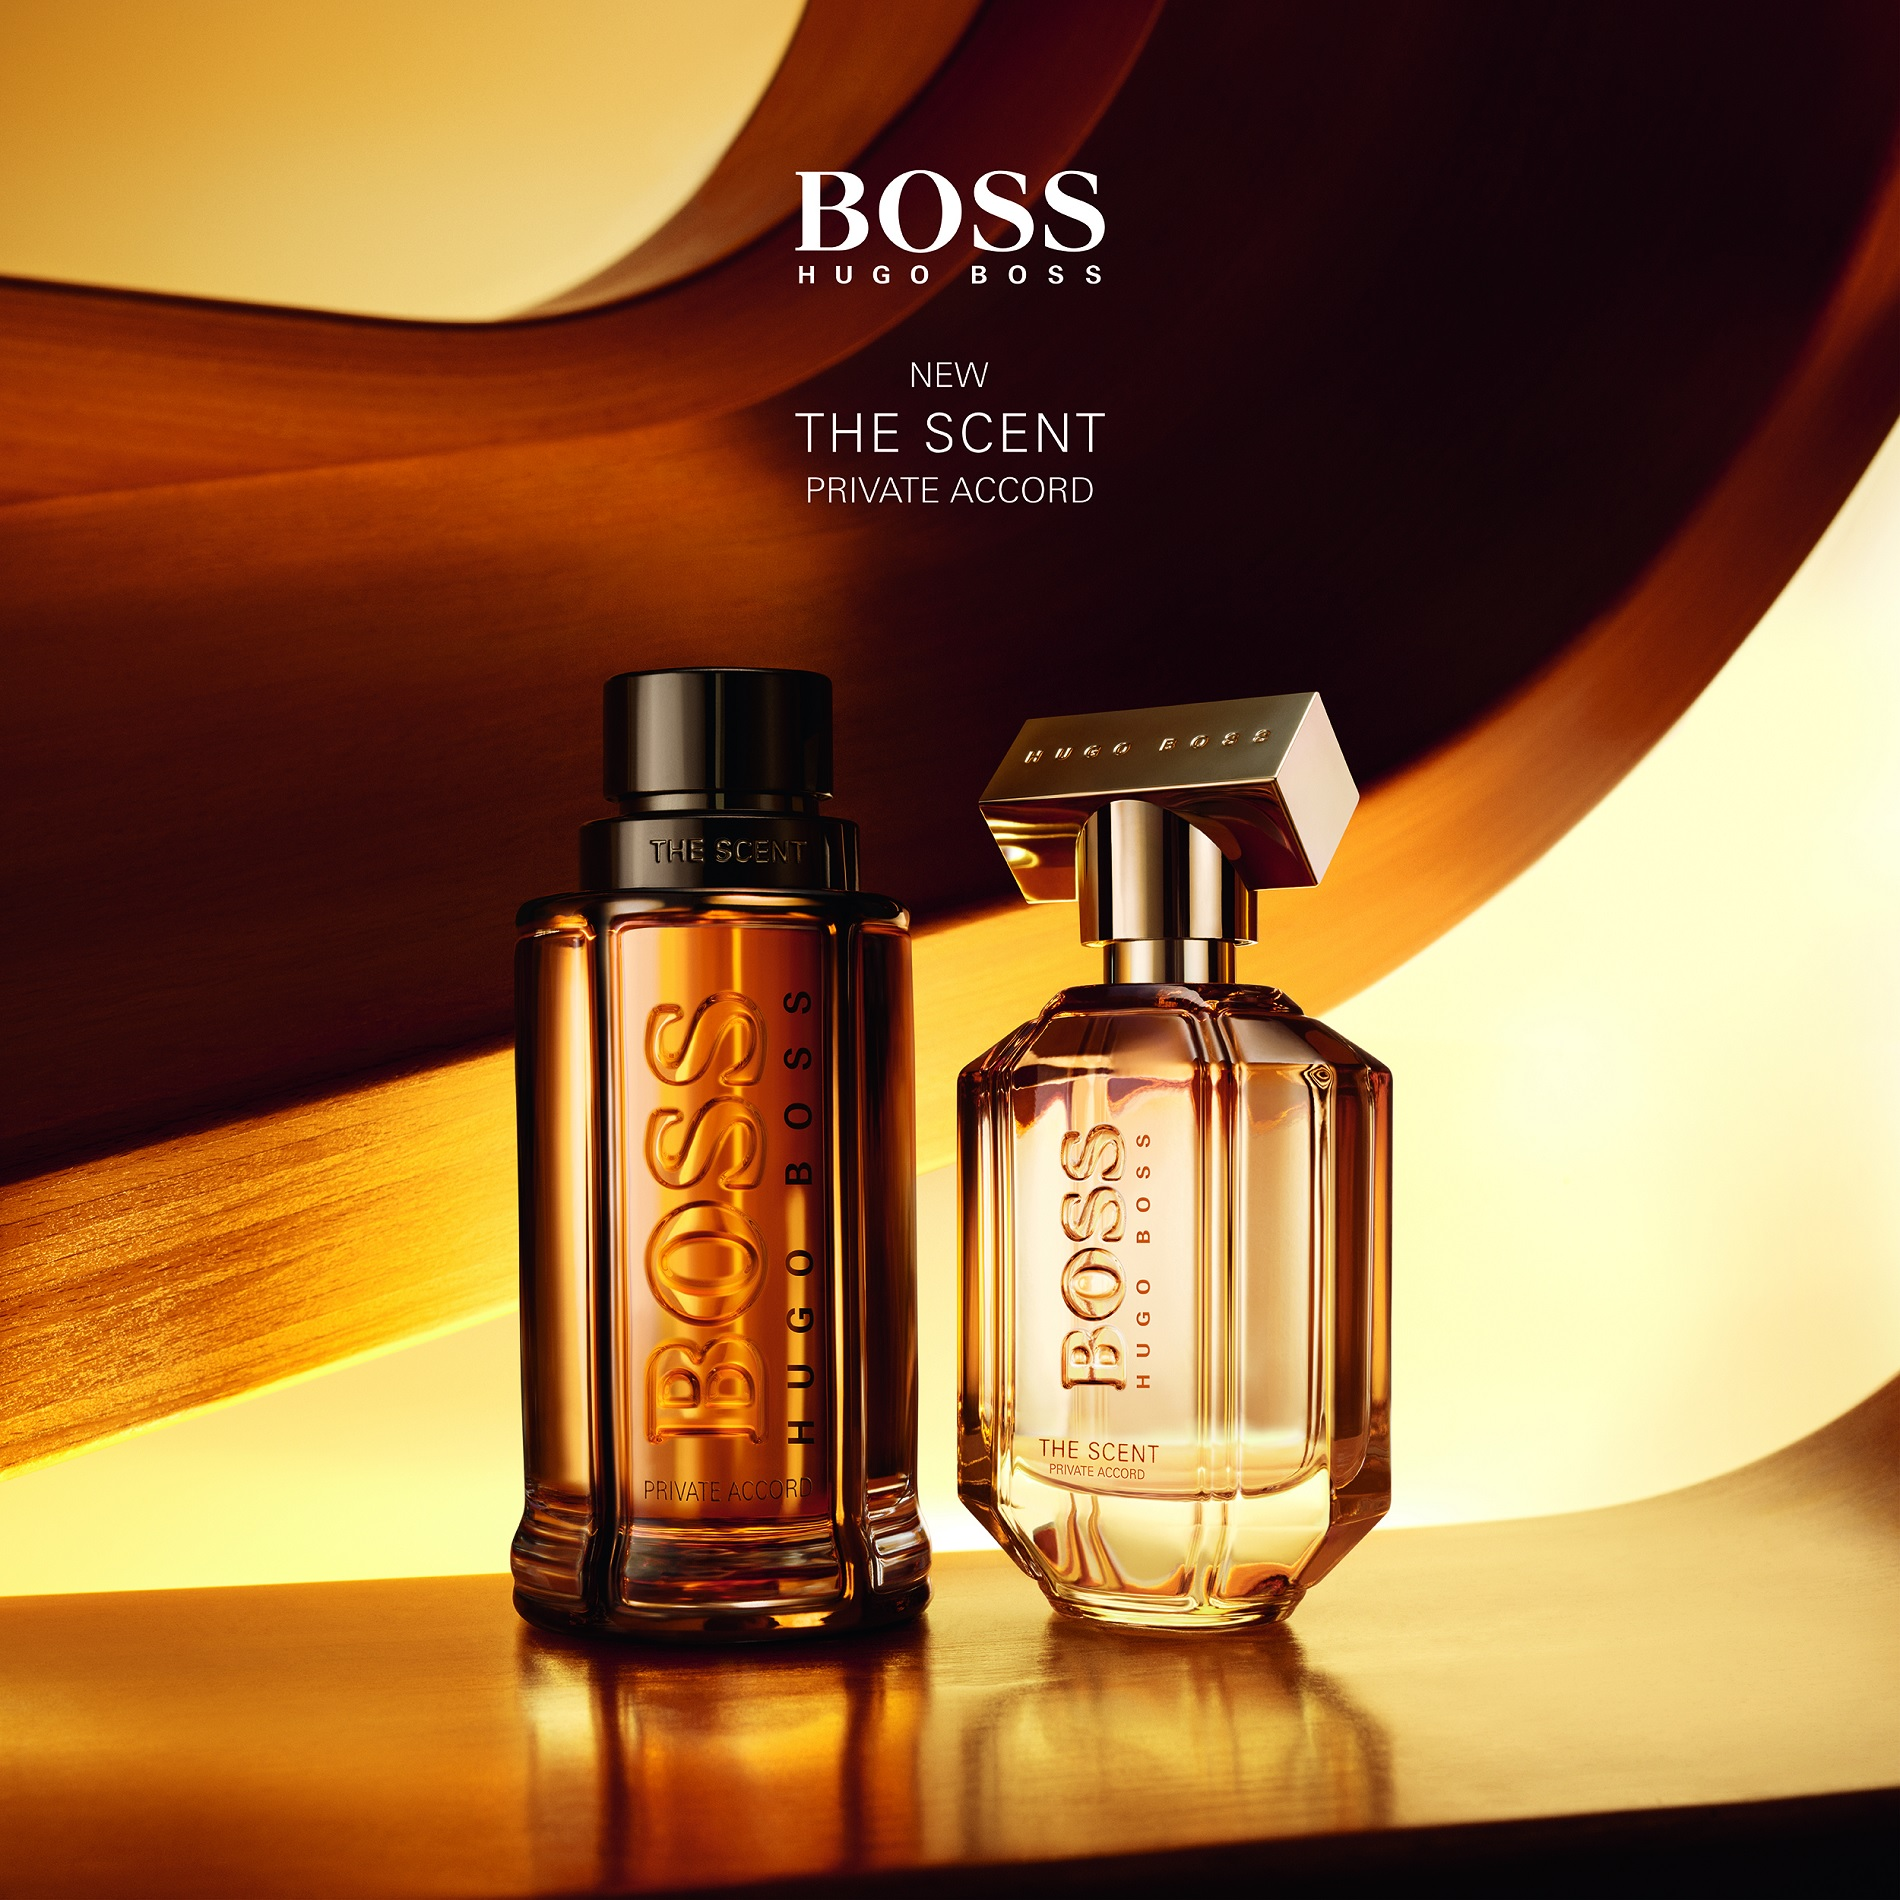 Hogo Boss Boss The Scent Private Accord For Her Hugo Boss Perfume